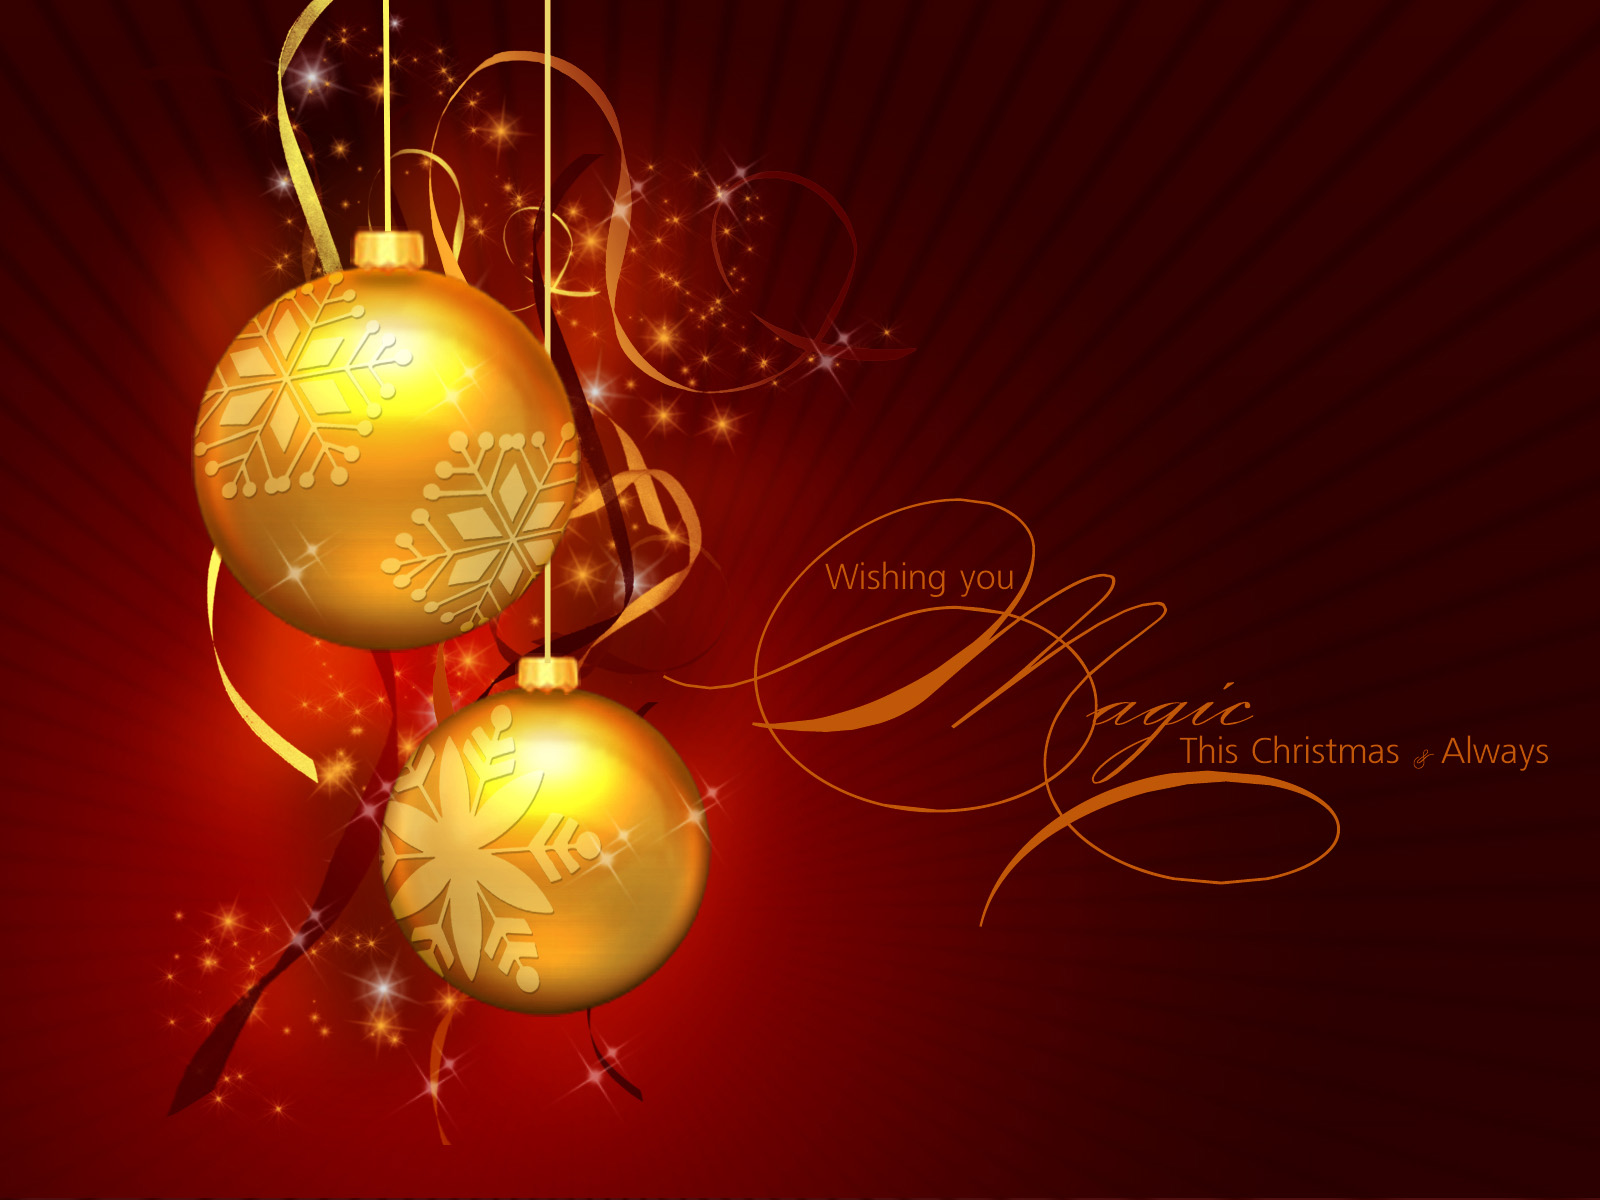 Abstract Christmas Christmas Wallpaper 3d Wallpapers Wallpaper